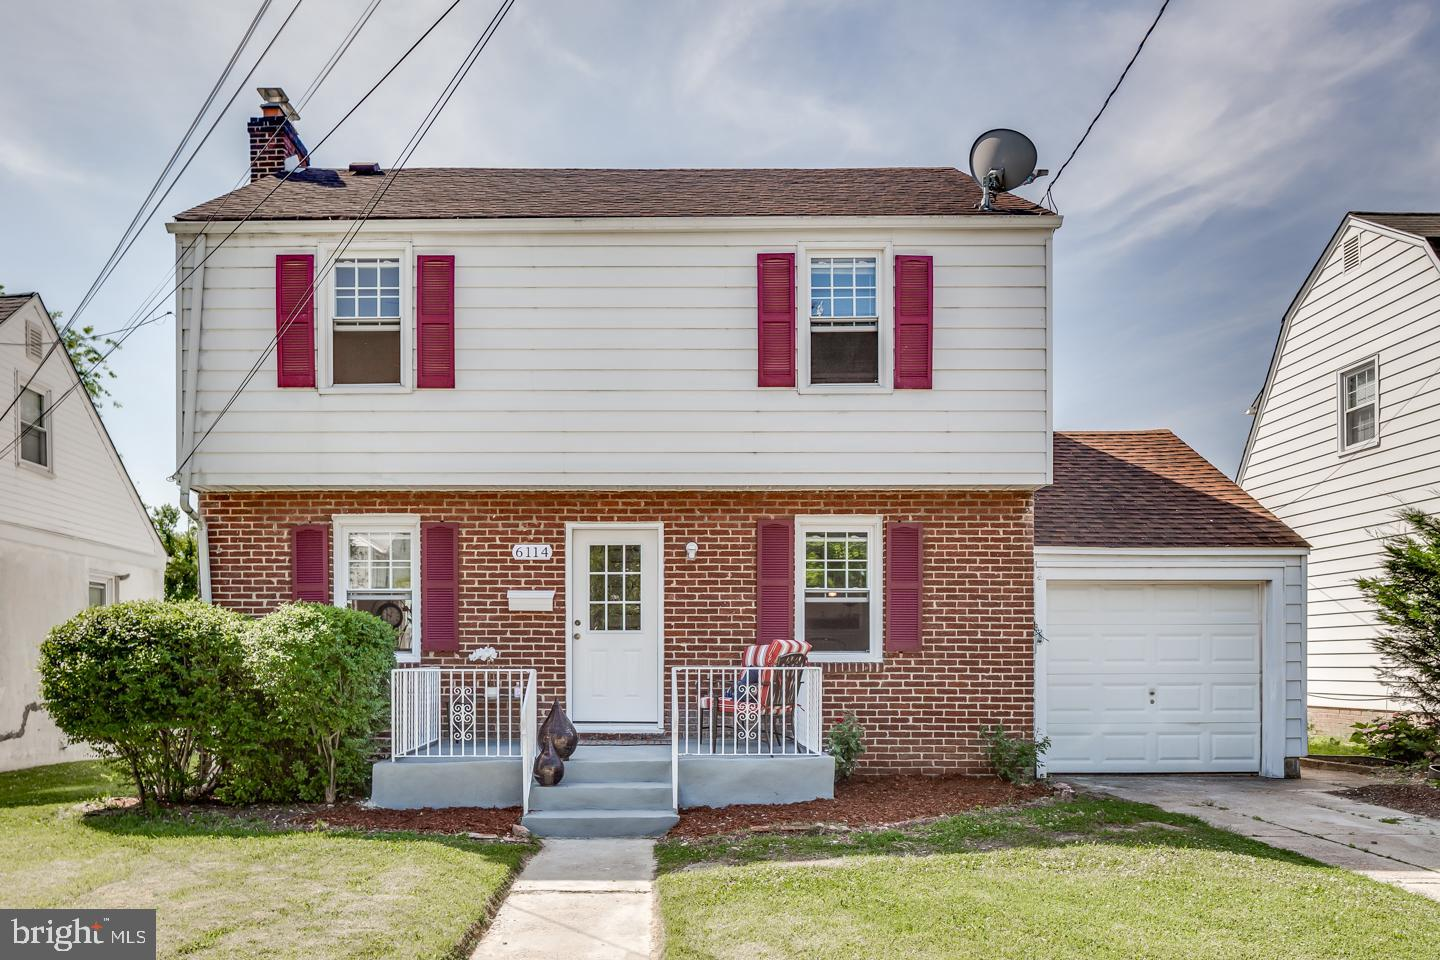 6114 High Street, Pennsauken, NJ 08110